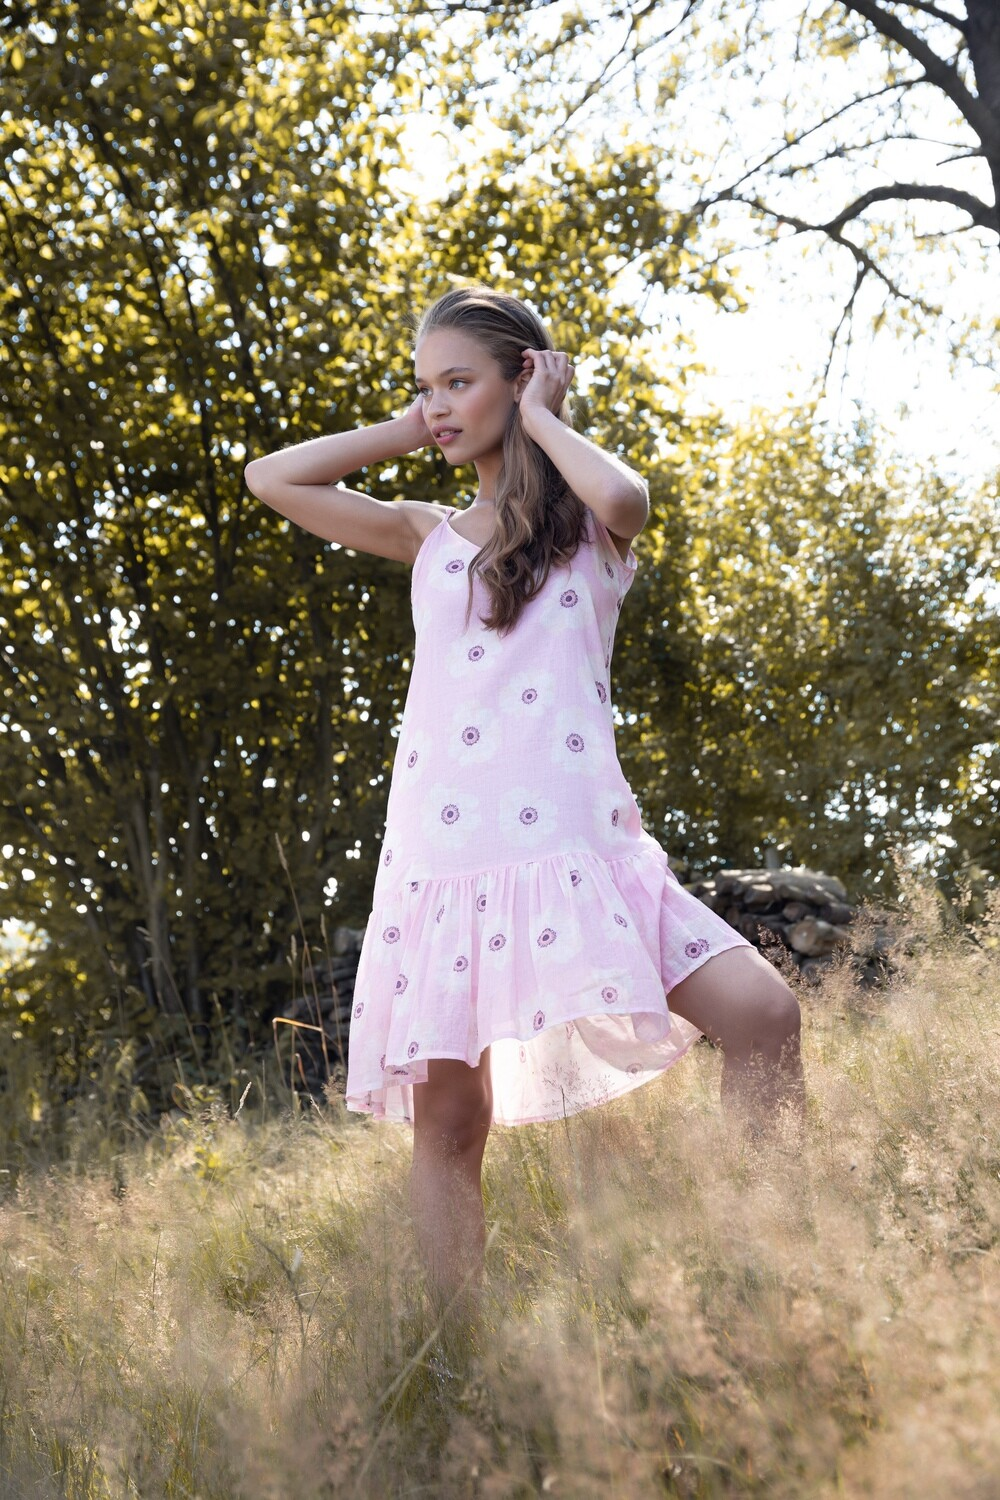 Sunbathing dress with pink flowers